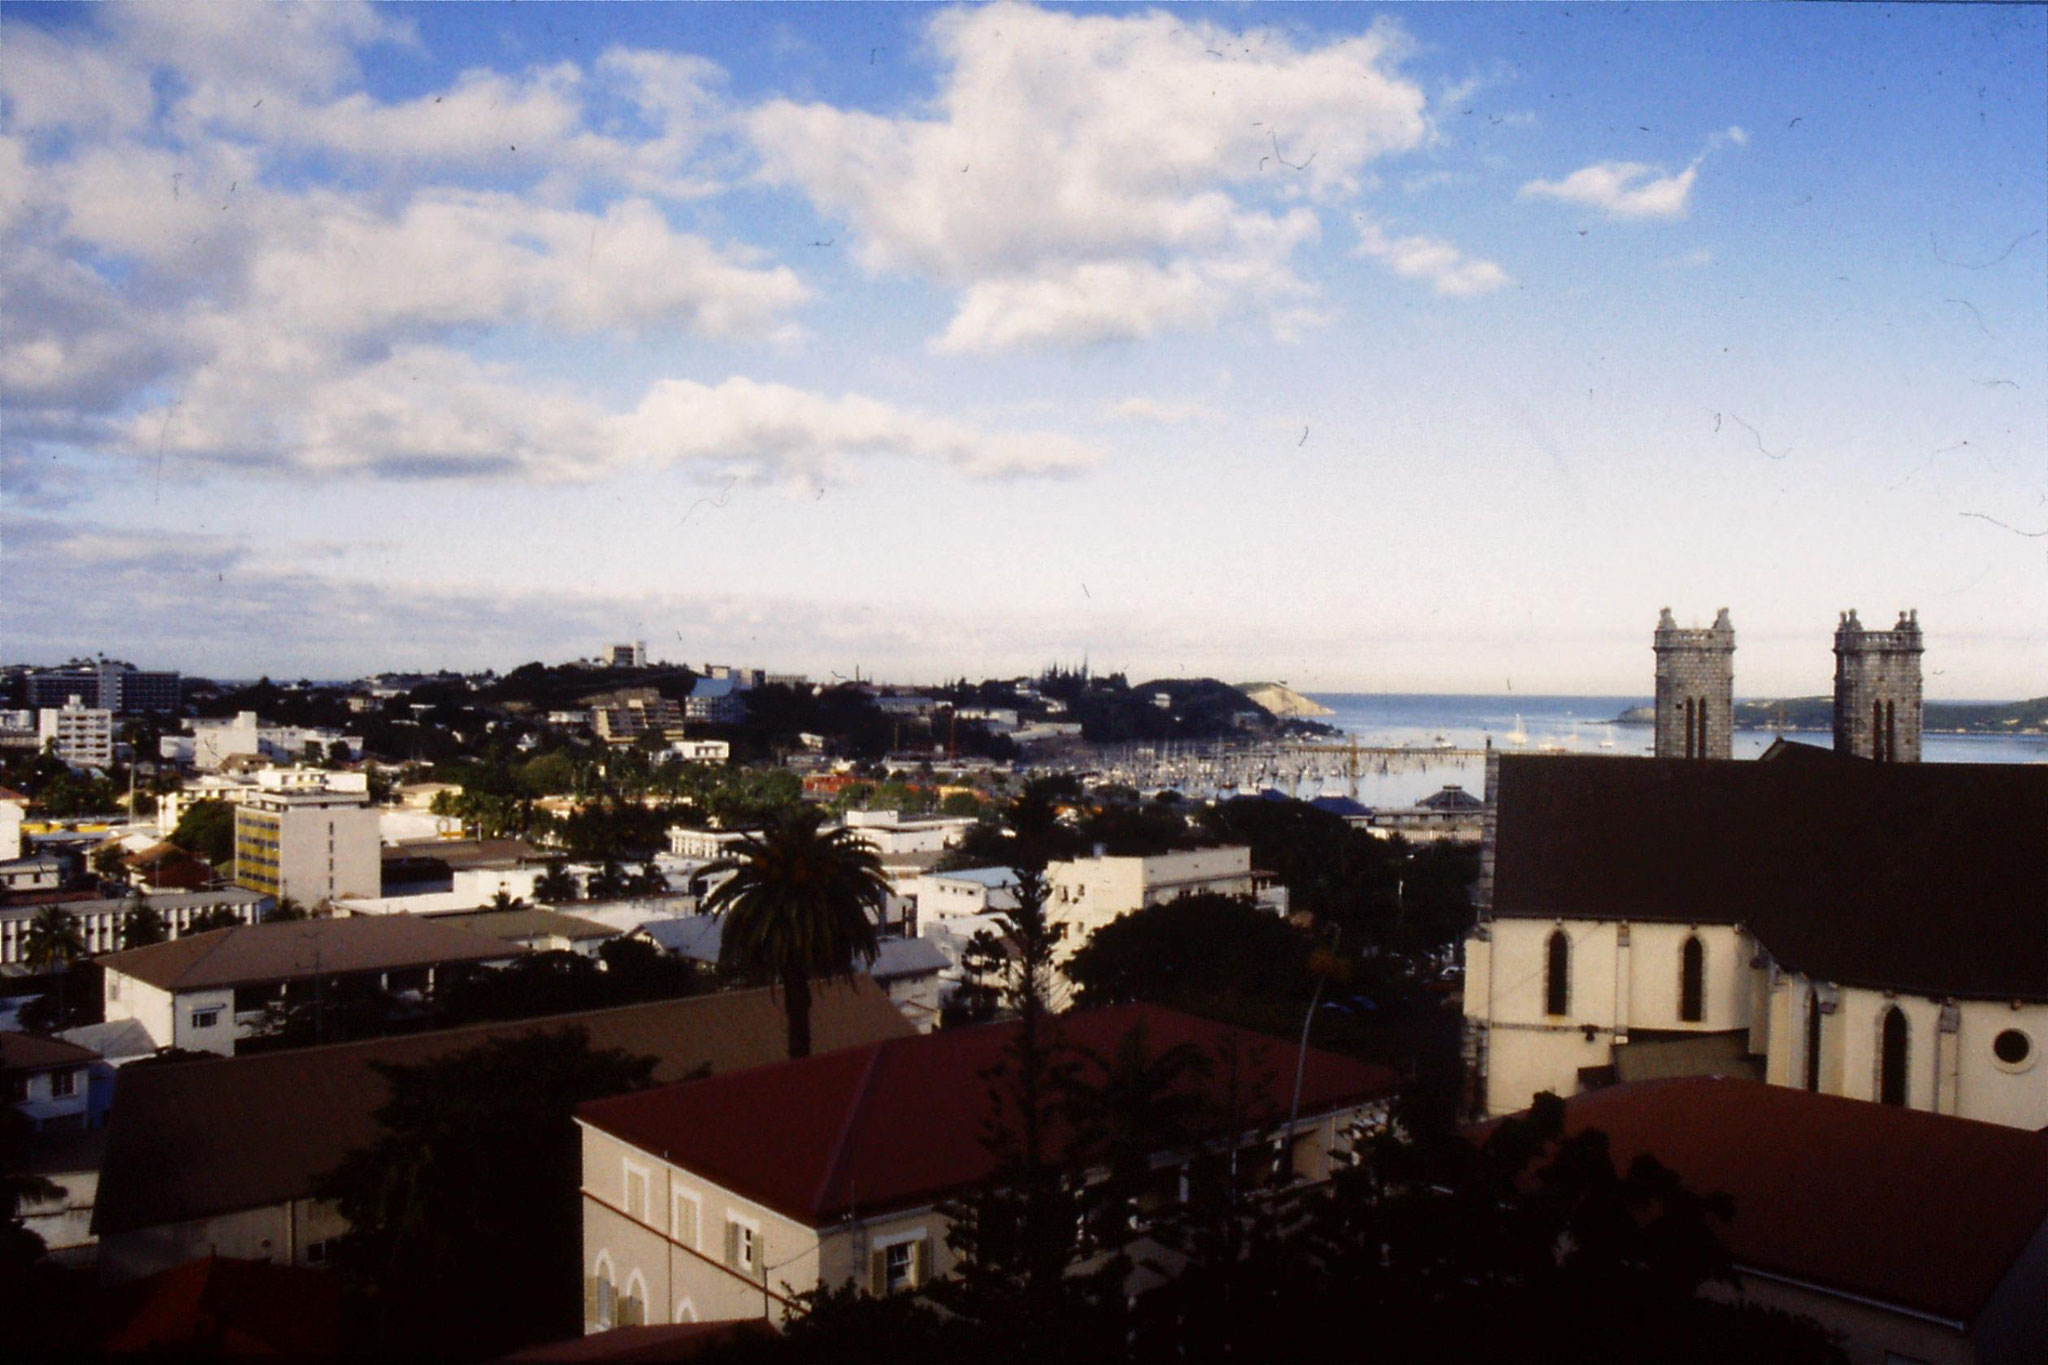 19/7/1990: 10: Noumea morning view from our room in Youth Hostel over harbour